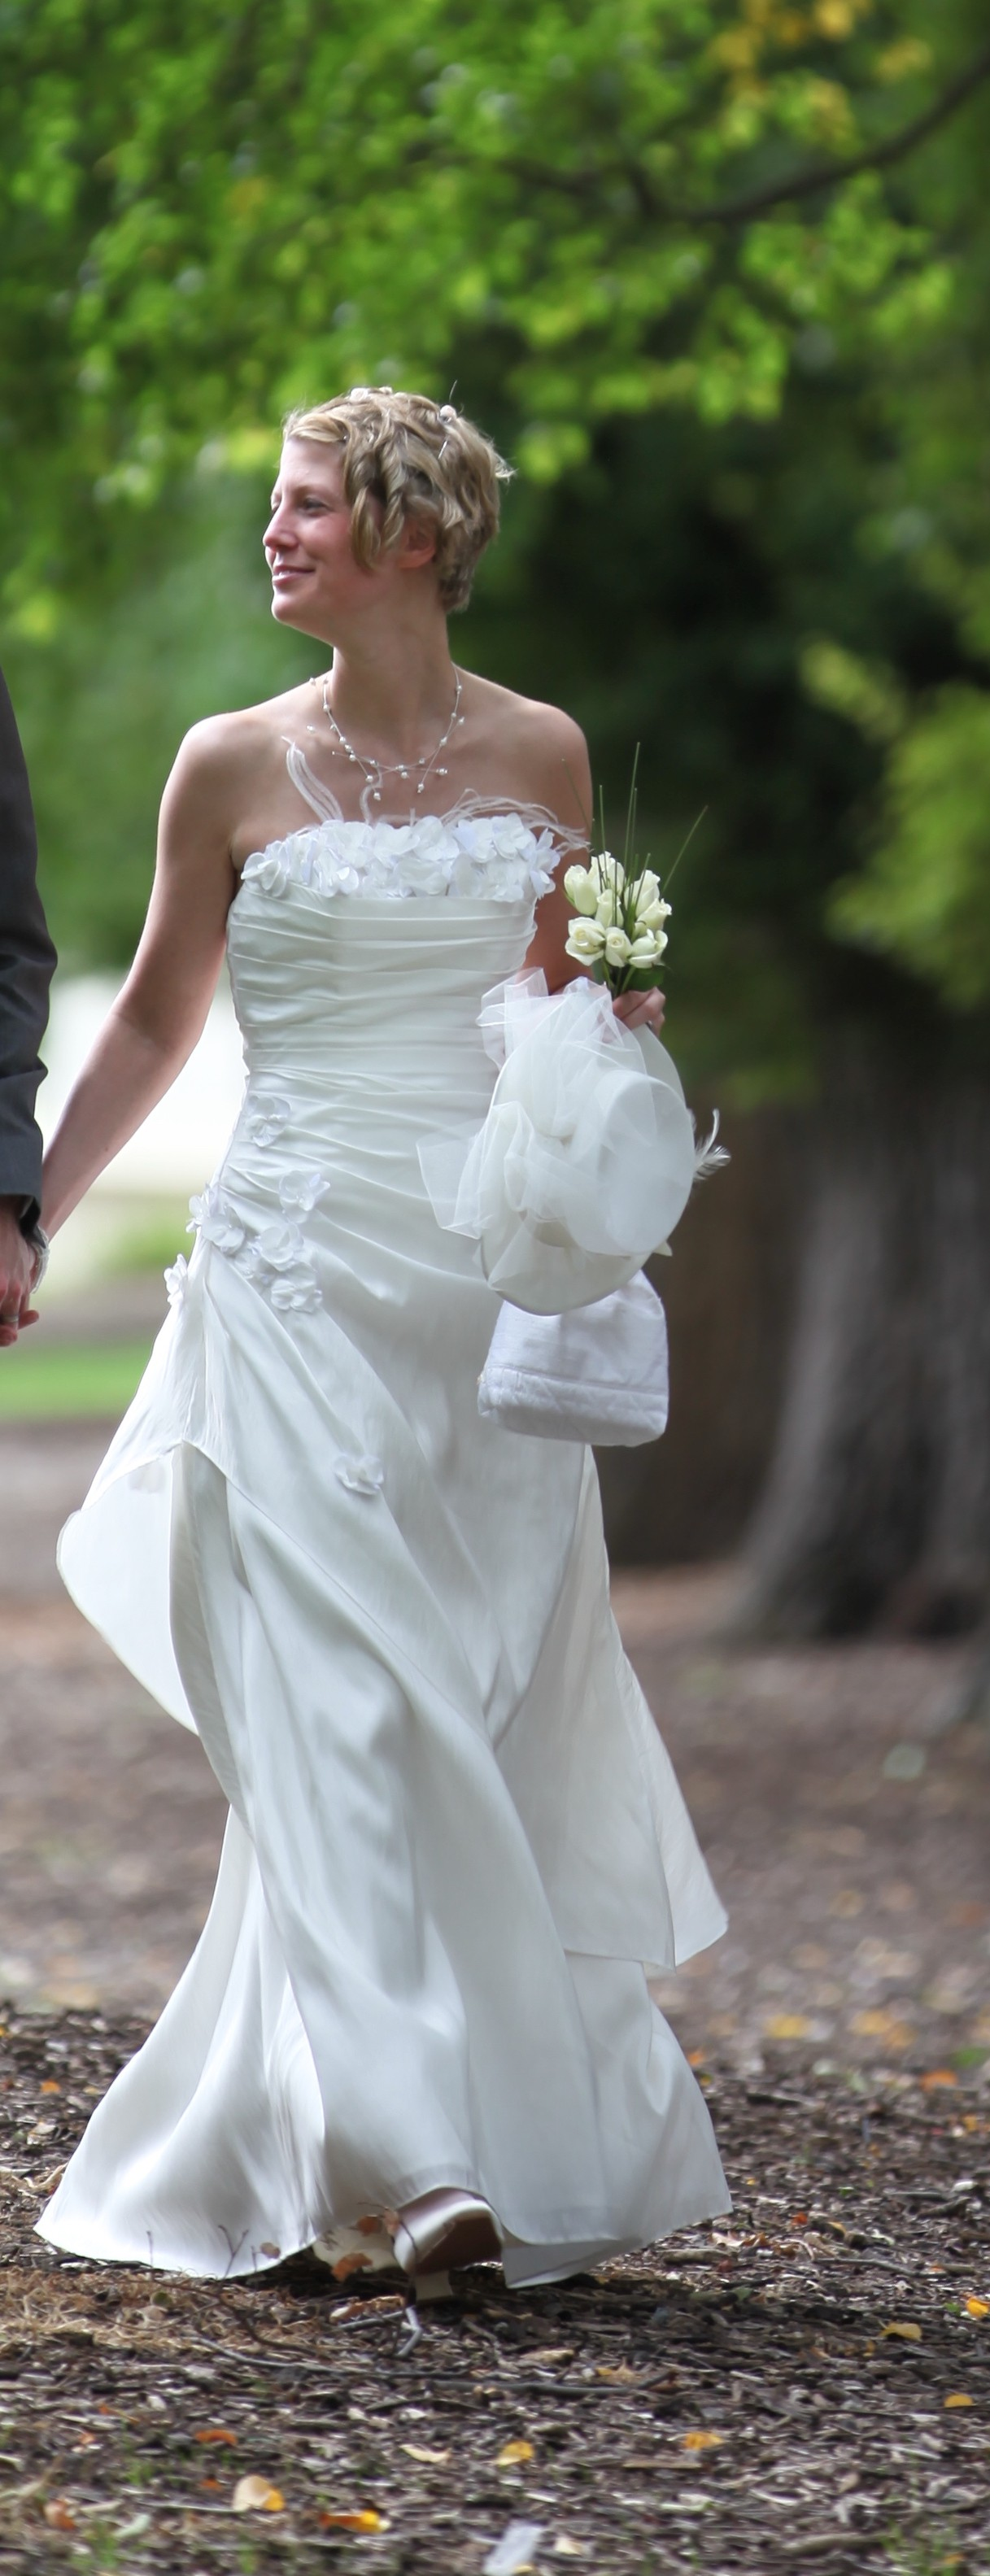 Amazing Second Hand Wedding Dresses For Sale Ideas - All Wedding ...